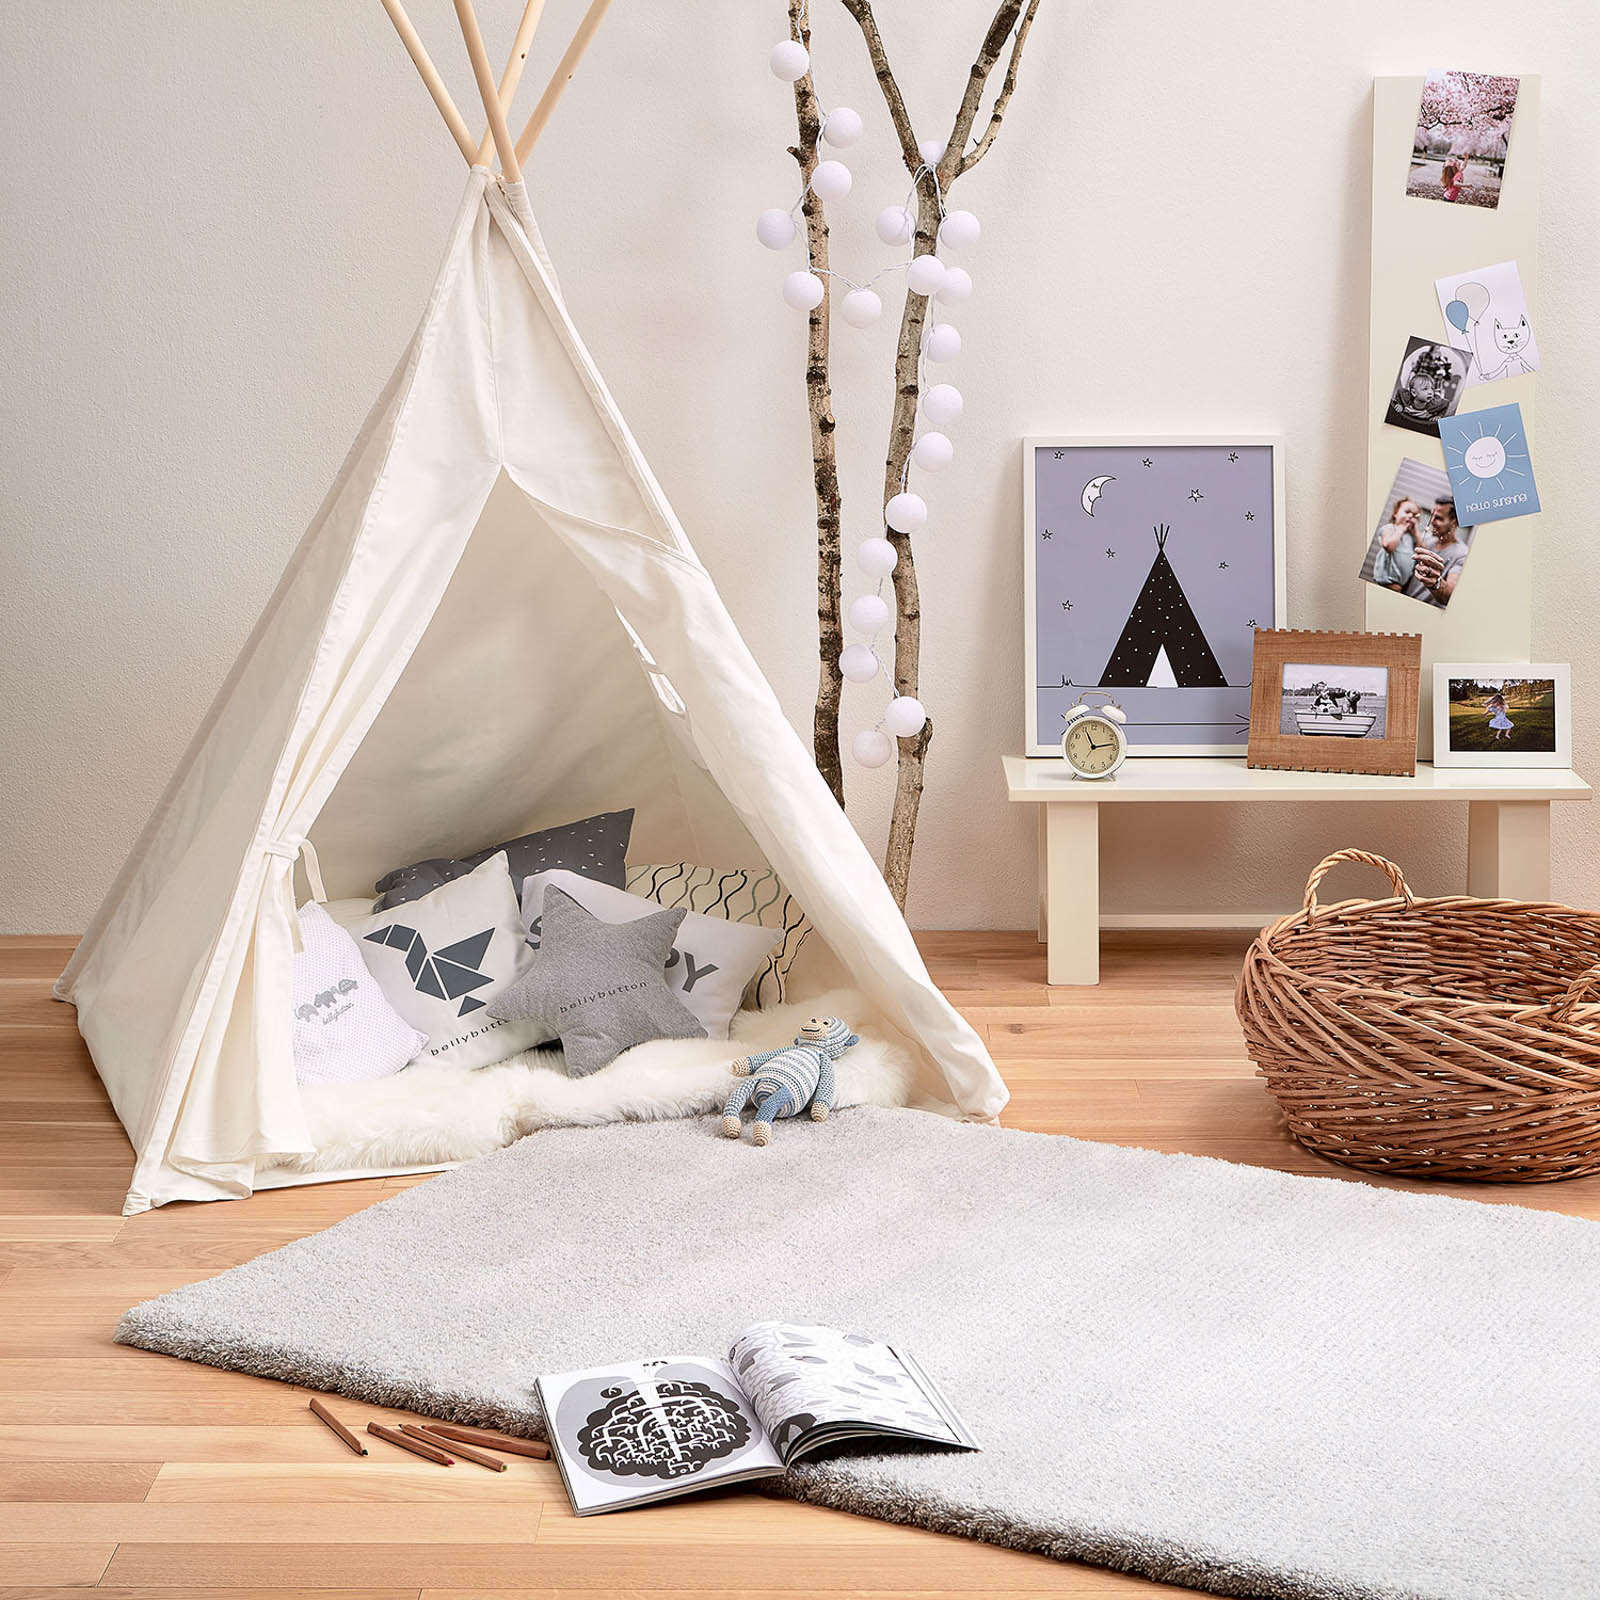 woodland theme decor in a toddler's bedroom